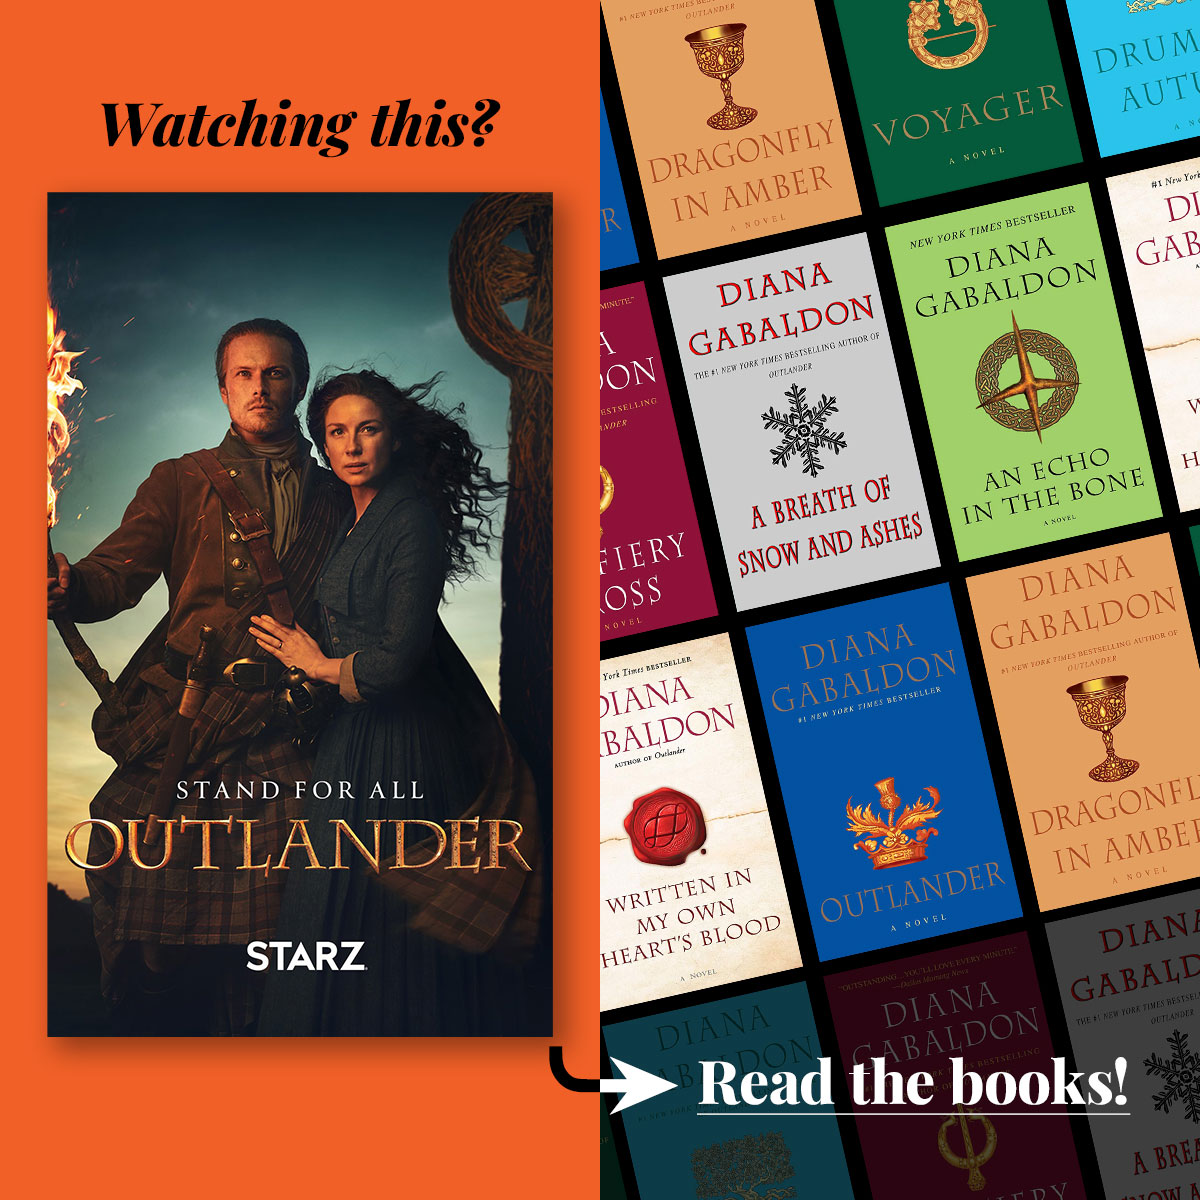 The Outlander series by Diana Gabaldon • Streaming on Starz